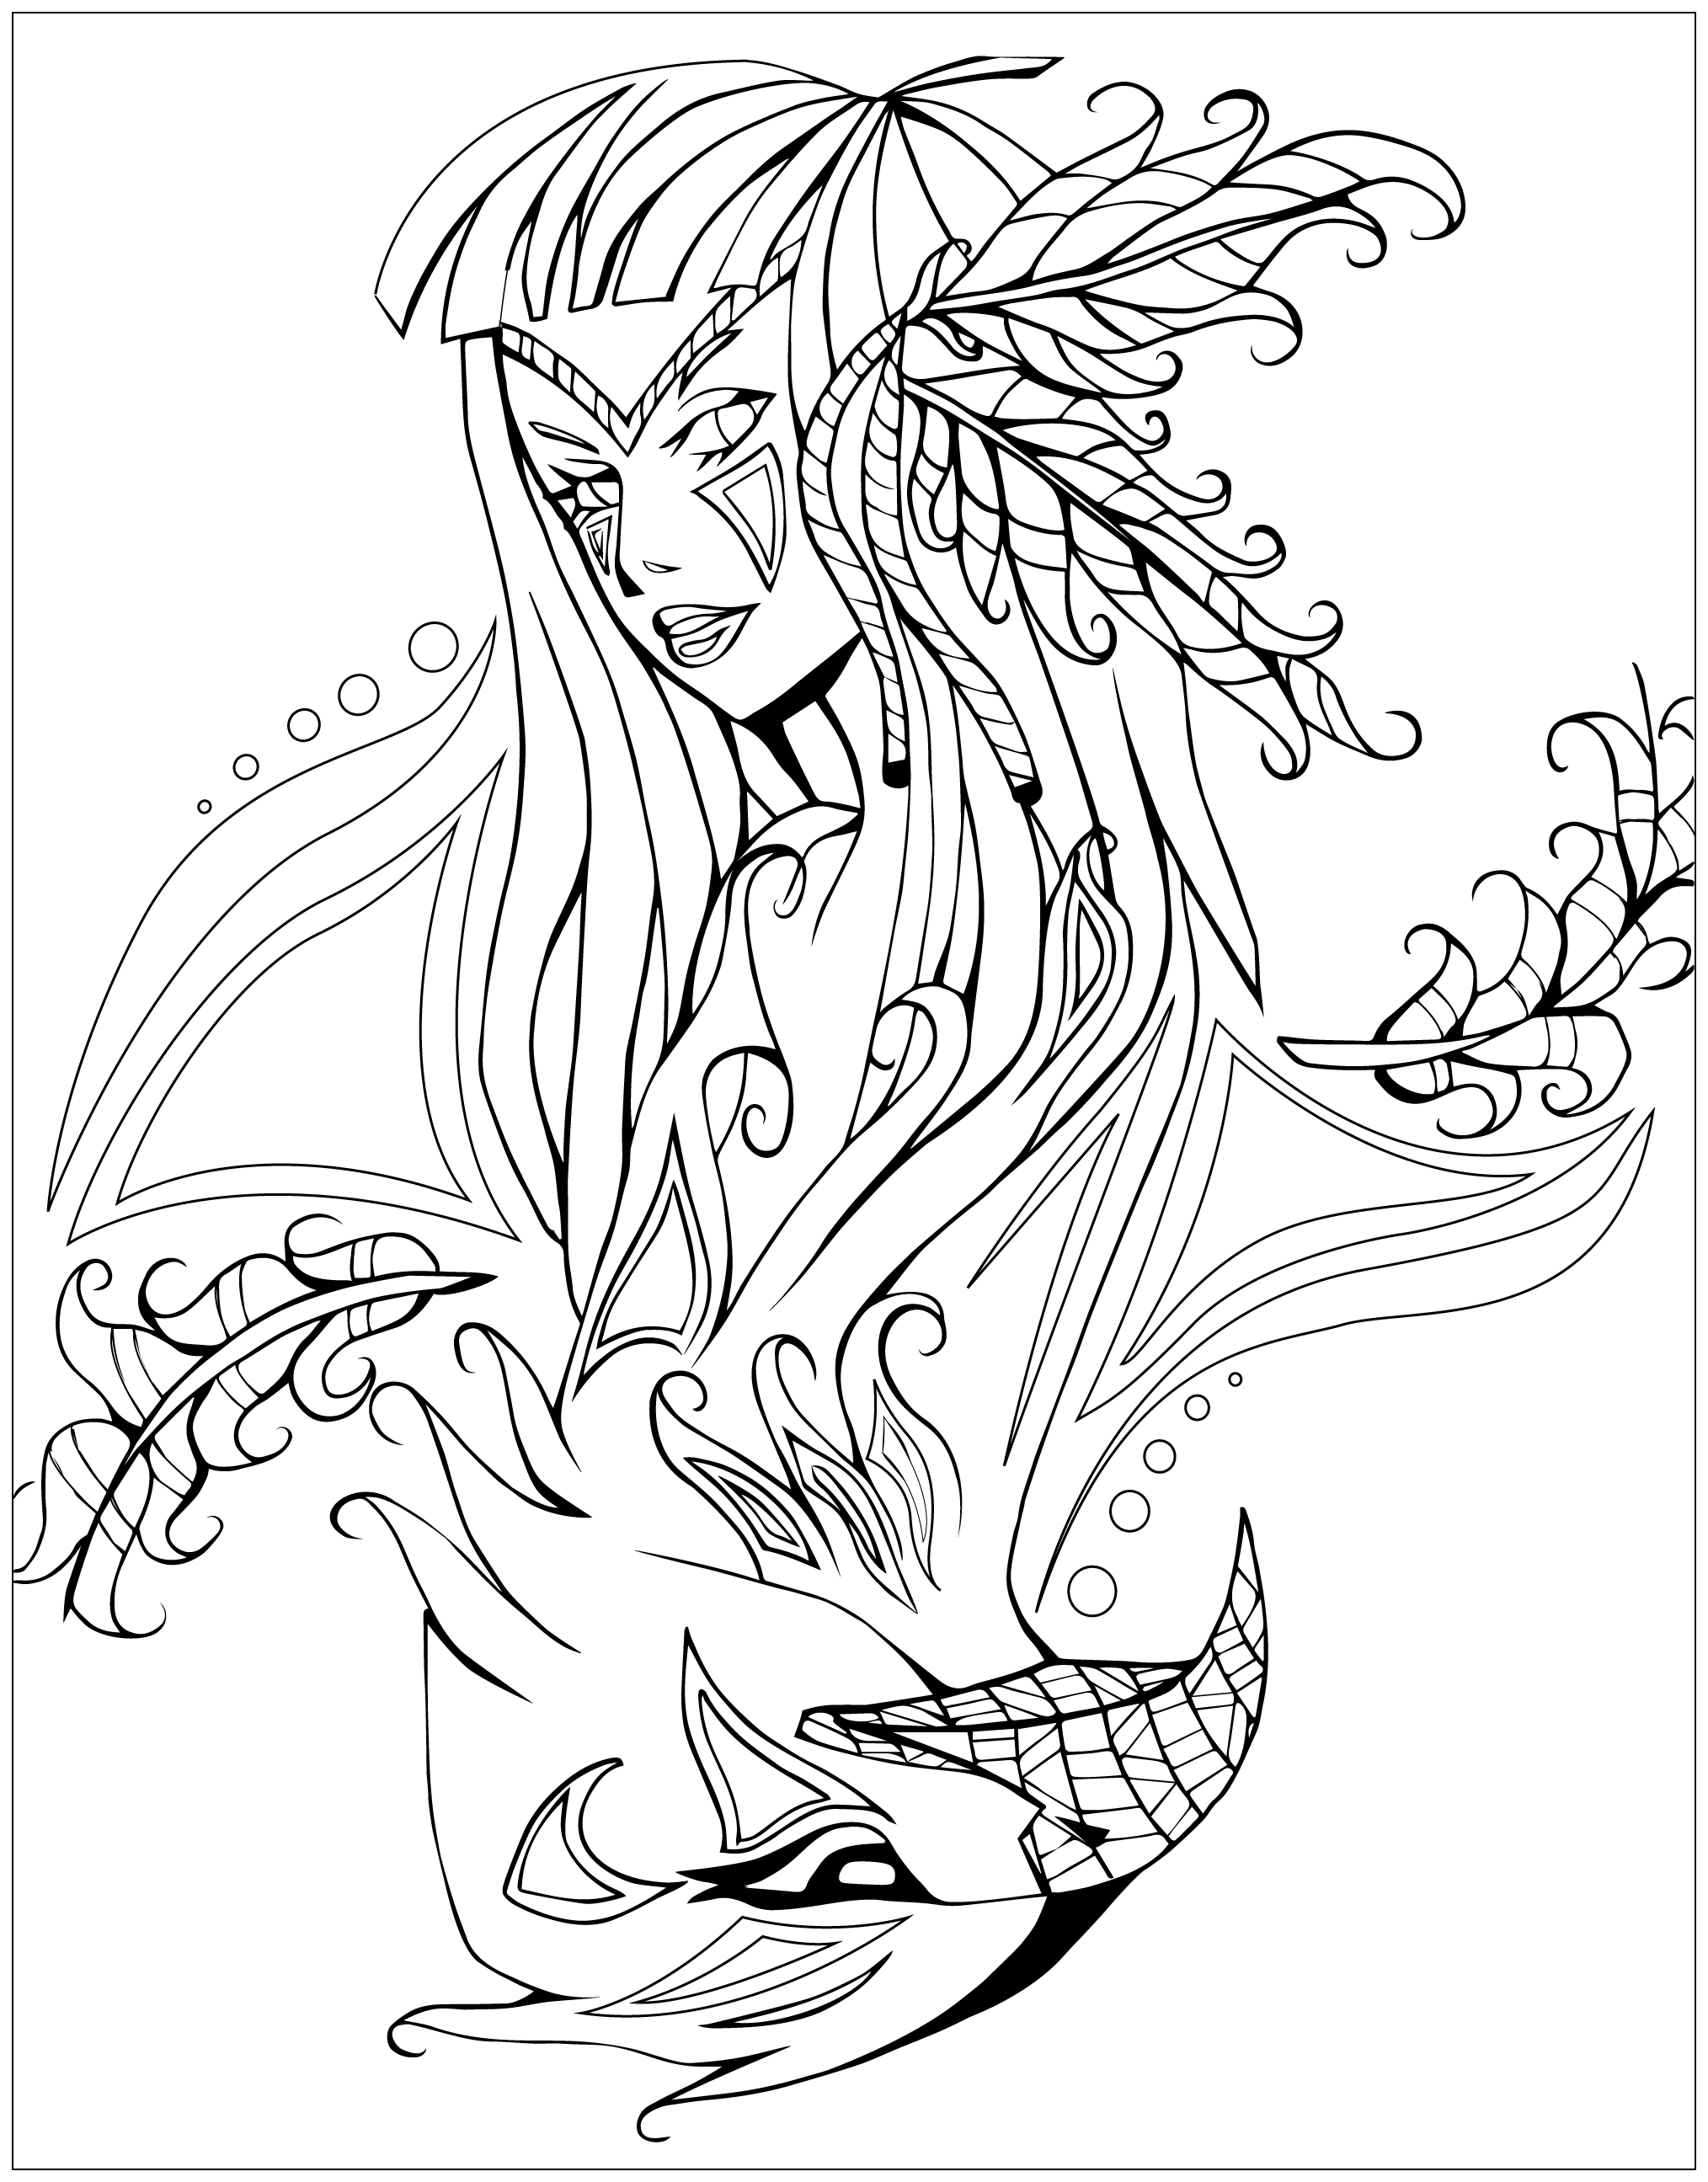 native american indian coloring pages native american coloring pages best coloring pages for kids indian native american coloring pages